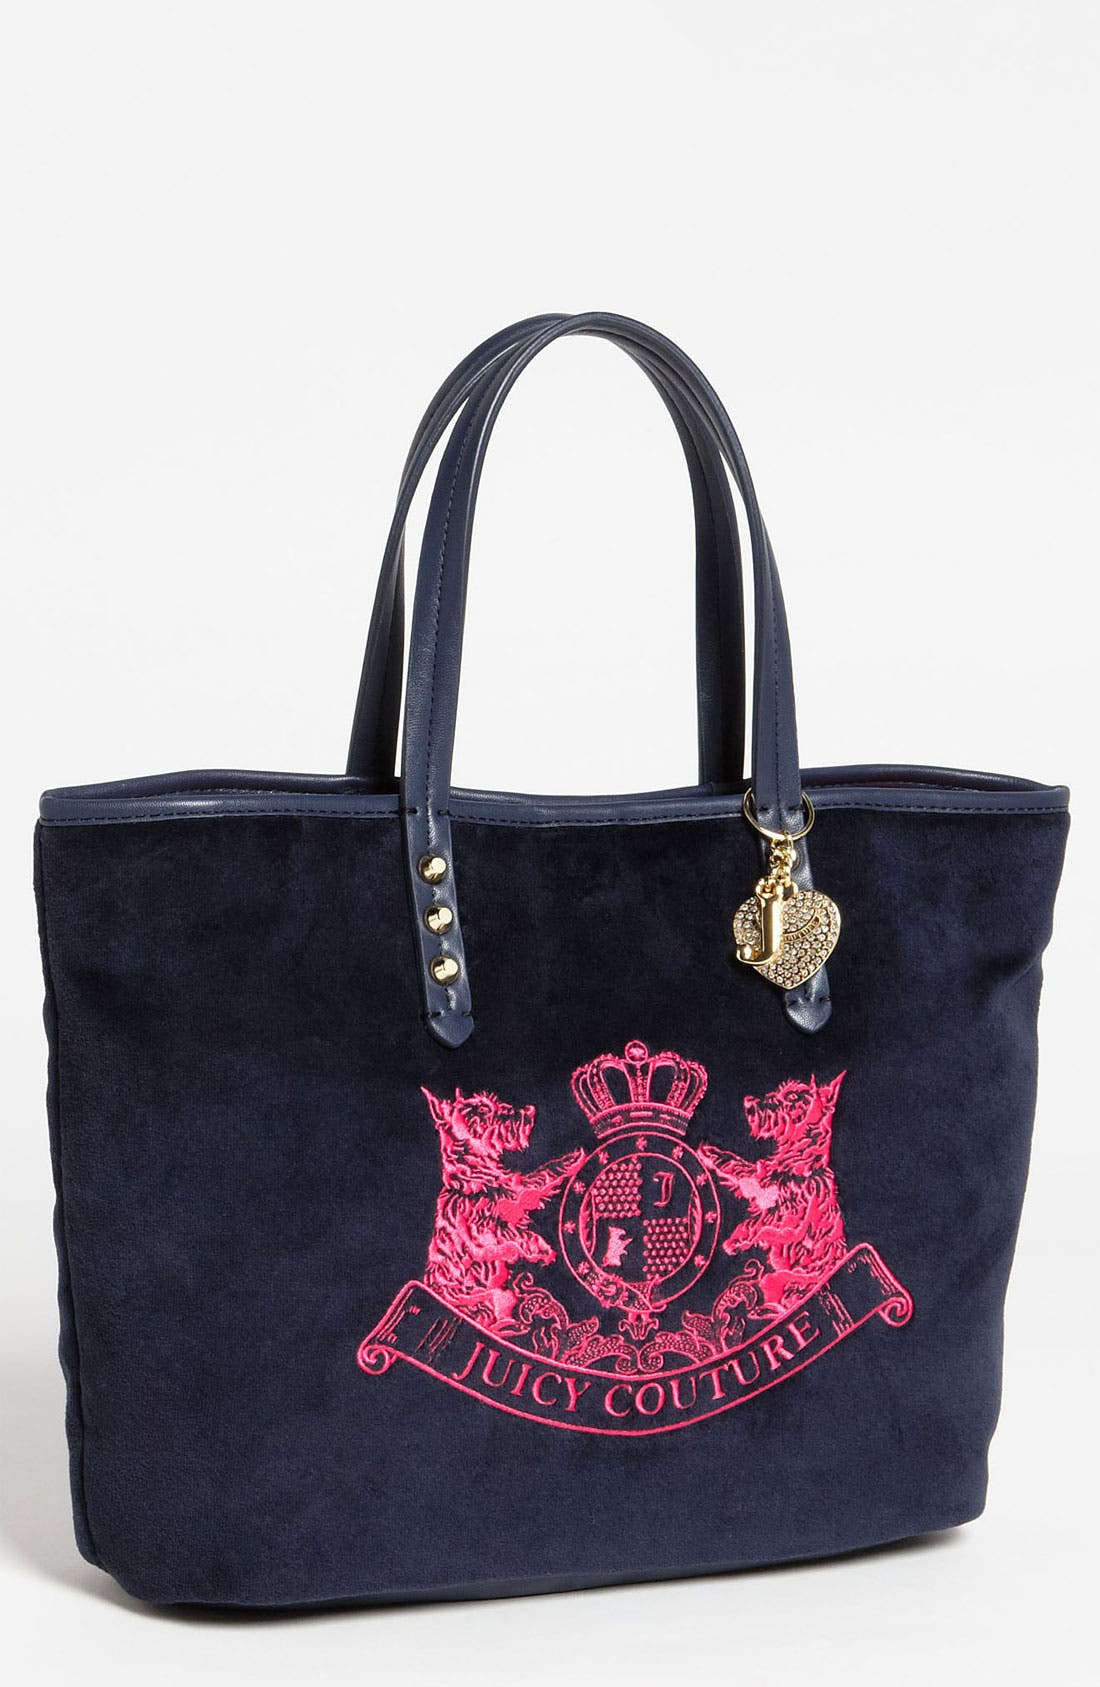 Alternate Image 1 Selected - Juicy Couture 'Pammy' Tote (Girls)